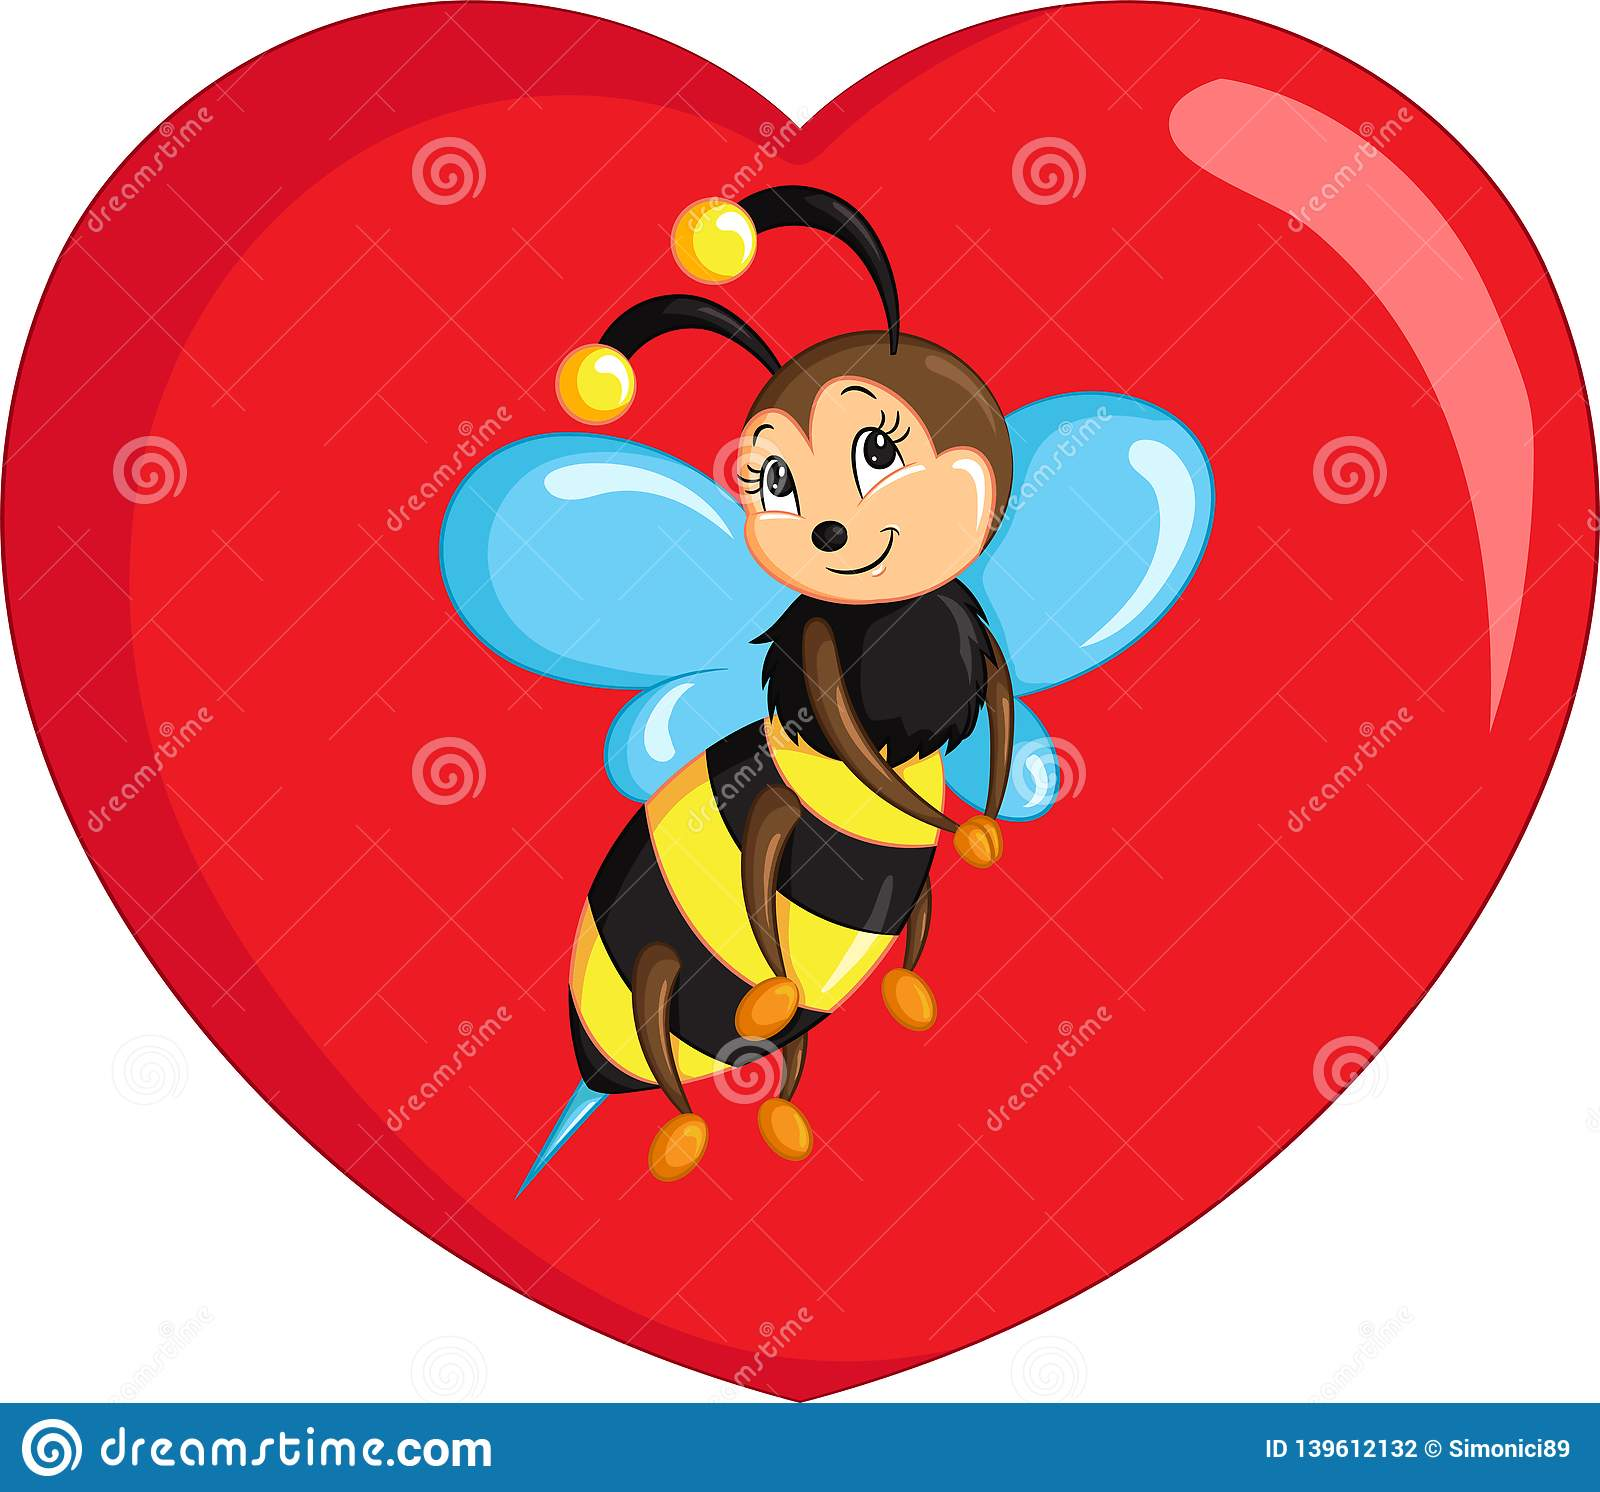 Color kawaii drawing of a little bee on a heart for children`s coloring book or Valentine`s Day card